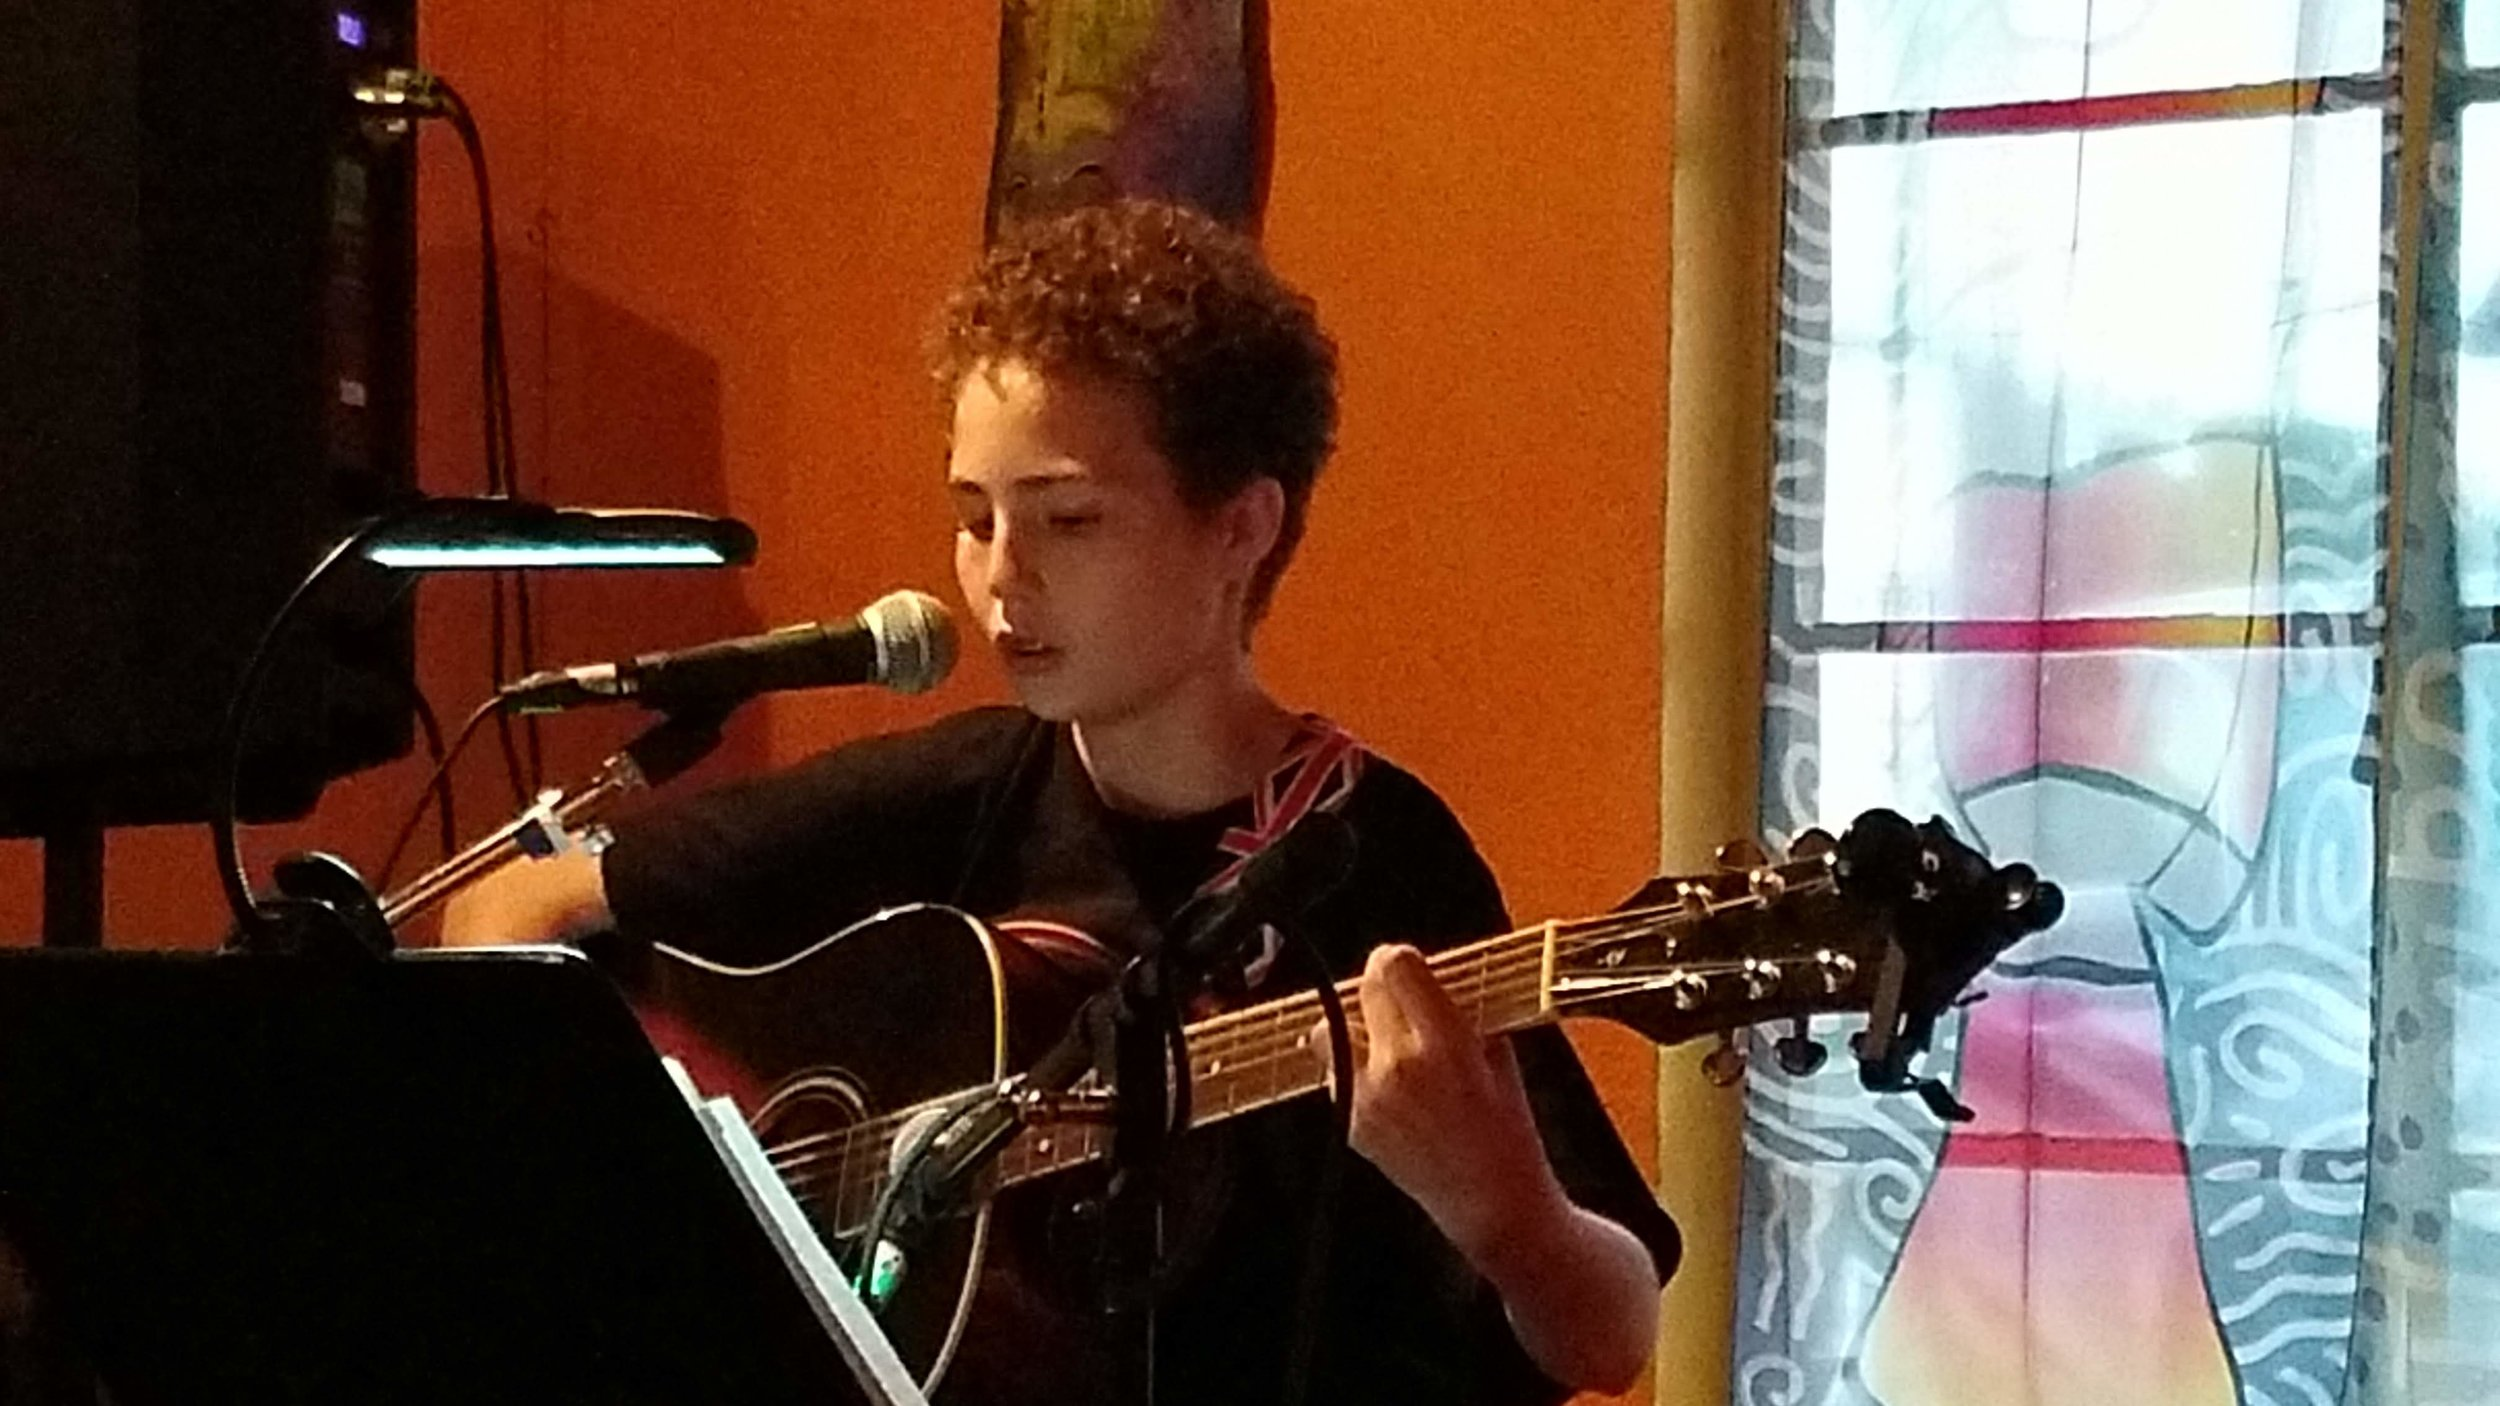 Weekly Open Mic Program - Started in October of 2018, our Open Mic Program provides a weekly opportunity for musicians of any age, ability, experience level, and genre to develop their live performance skills in a safe, appreciative, and supportive environment. Attendance in the first nine months has seen over 500 performances and 2,200 audience members.